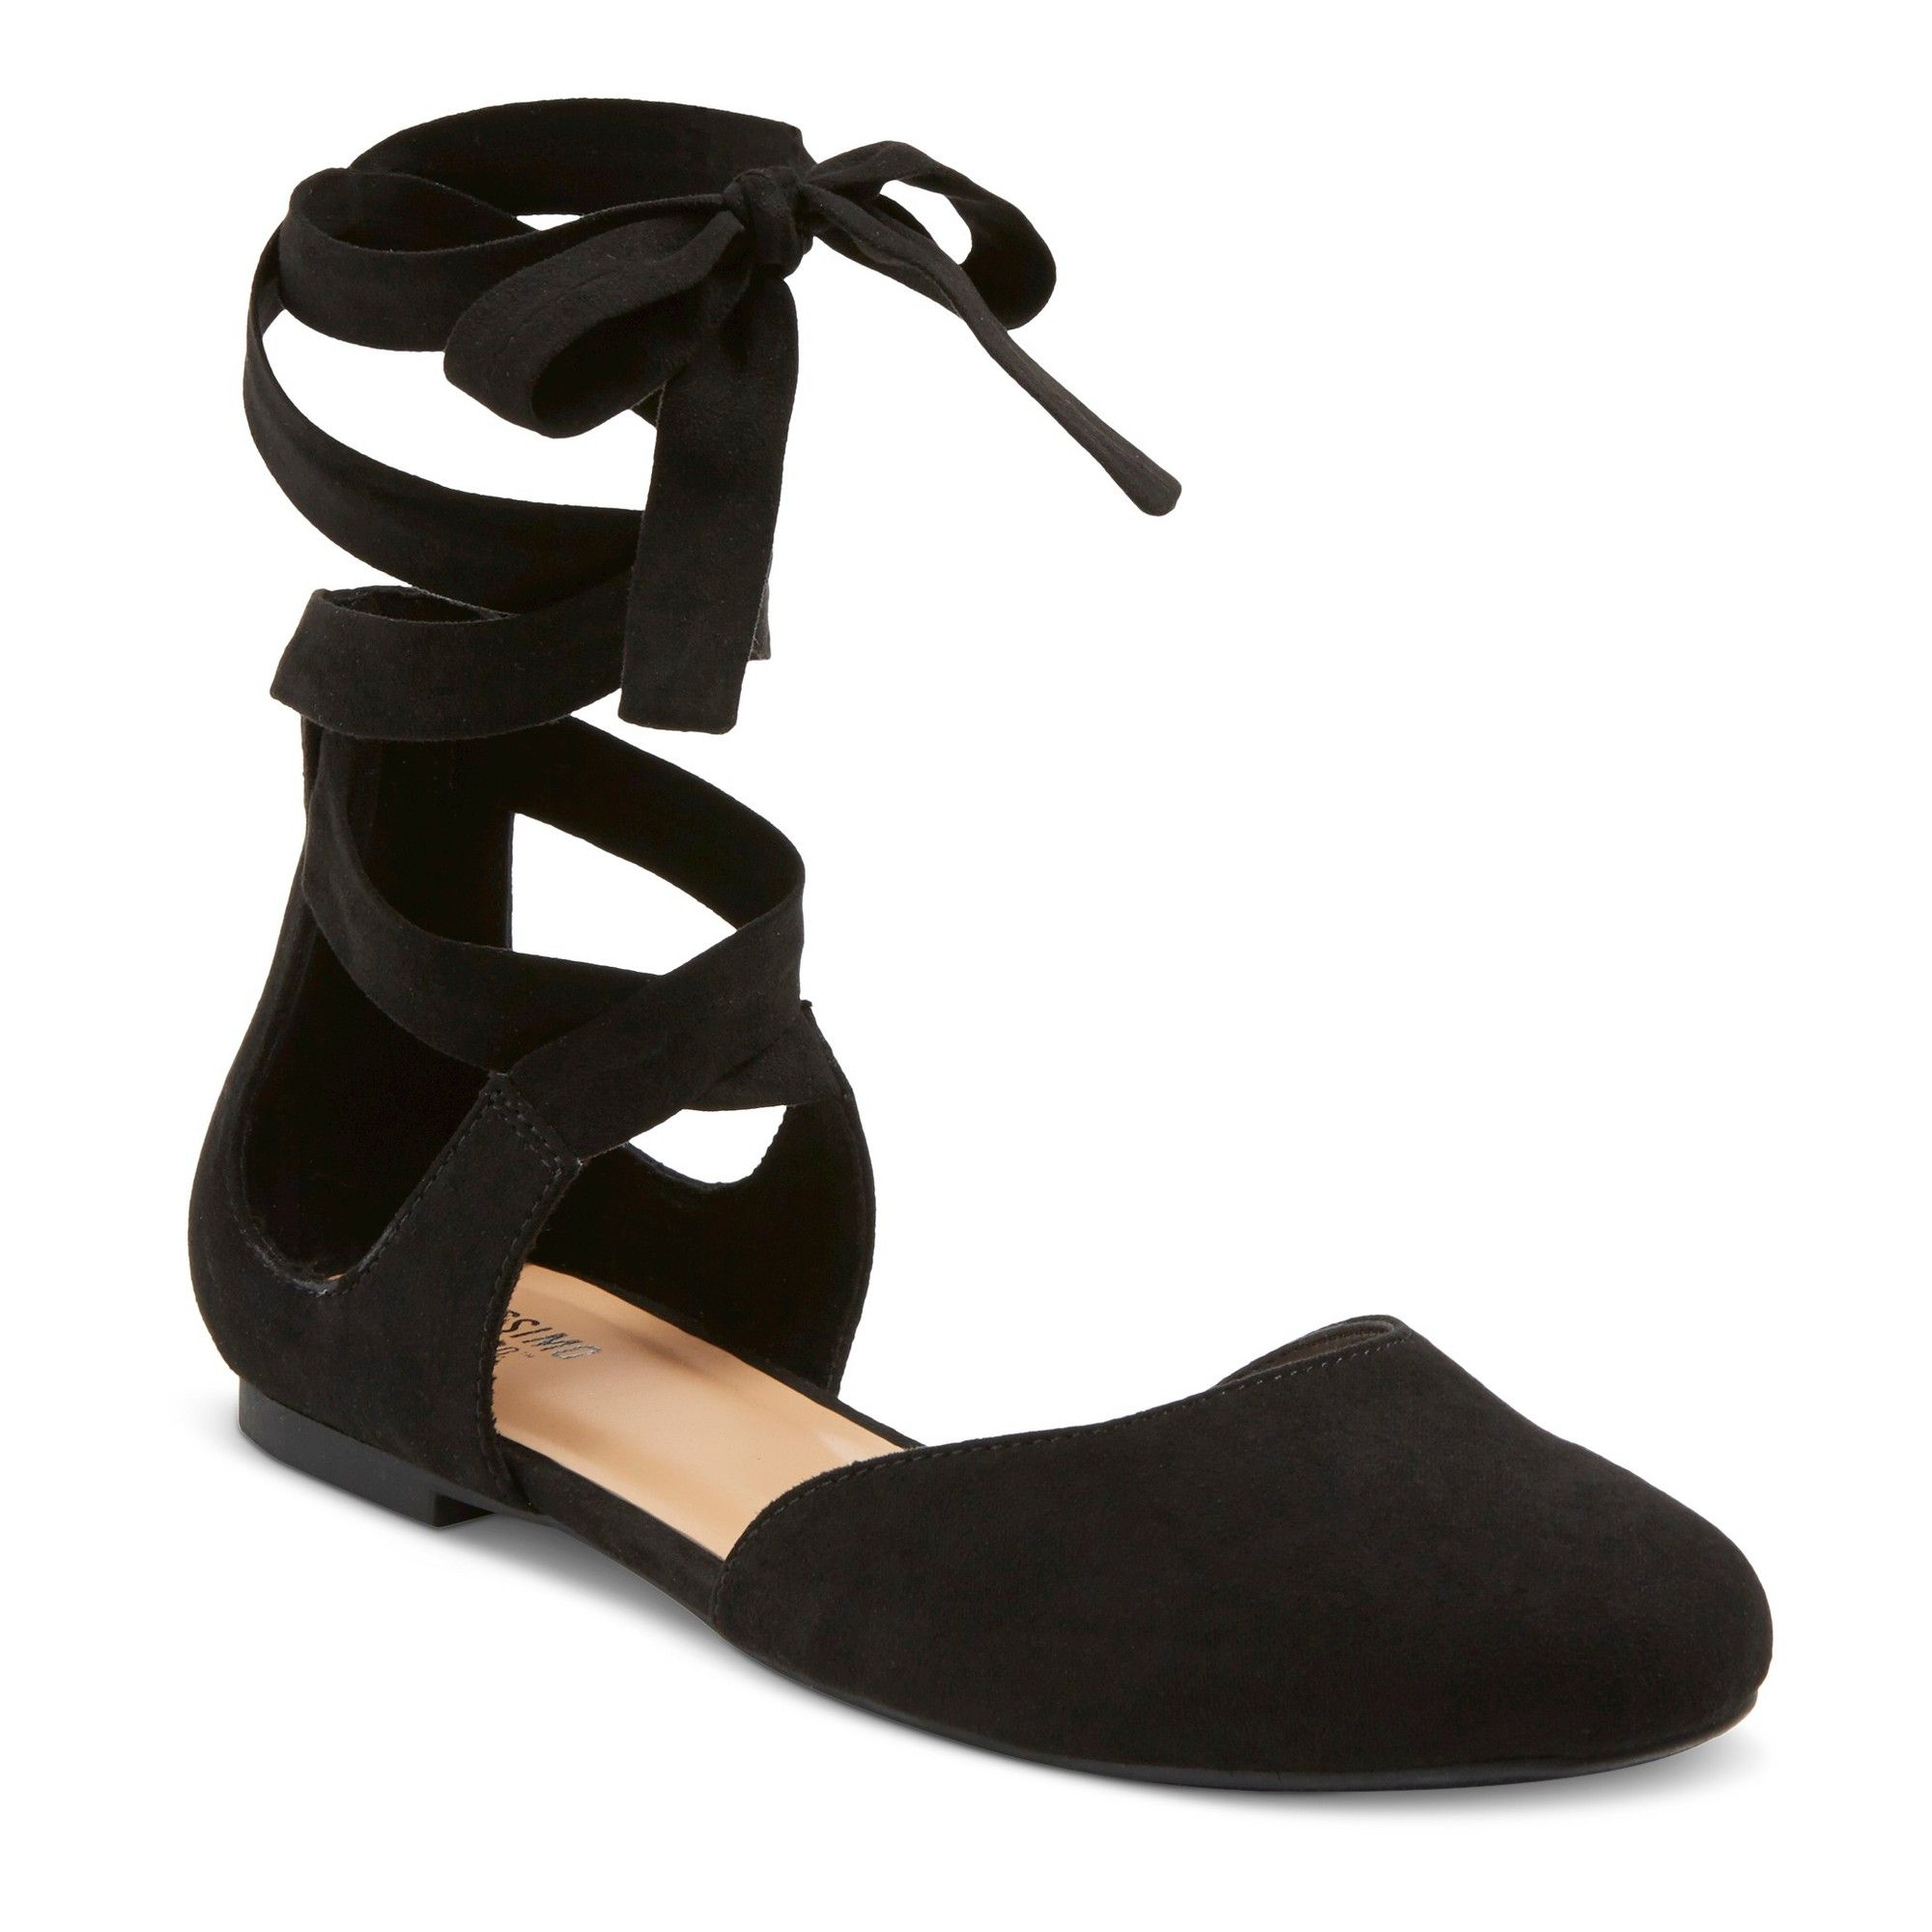 c2eb0540c90566 Women s Tess Ghillie Flat Lace Up Ballerina Round Toe Ballet Flats -  Mossimo Supply Co. Black 8